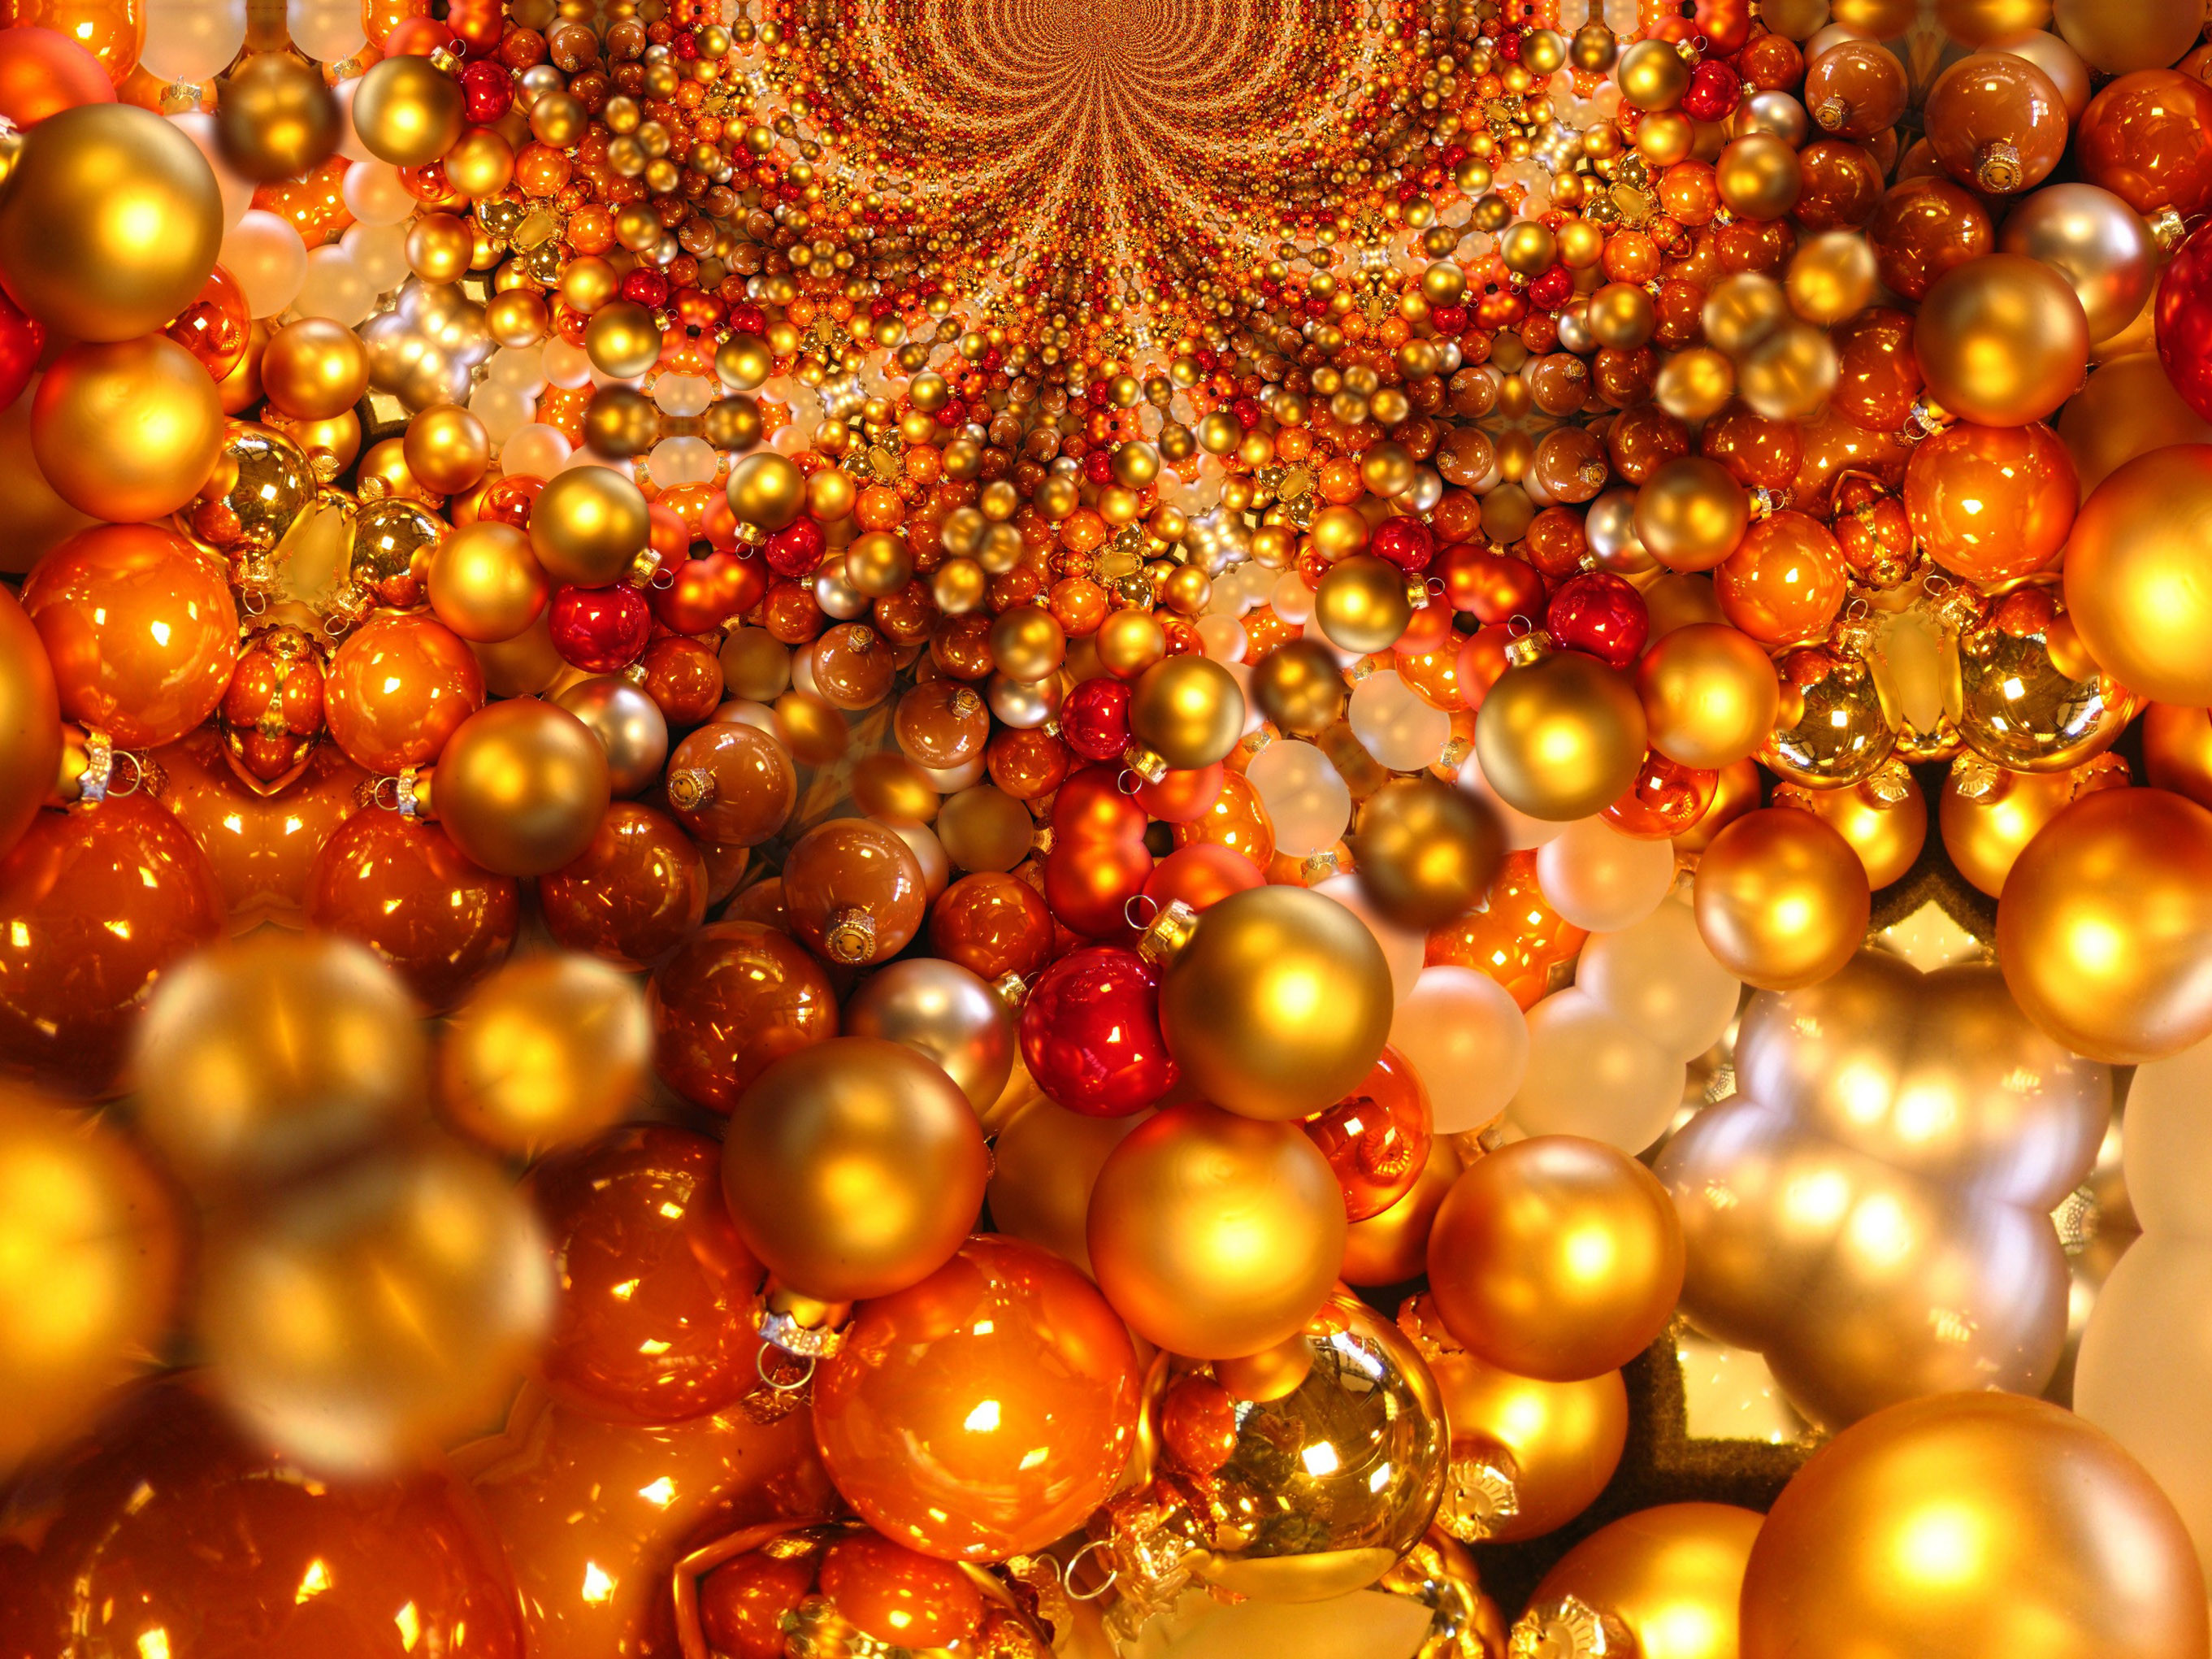 2722x2041 another christmas background of ball or bauble decoration